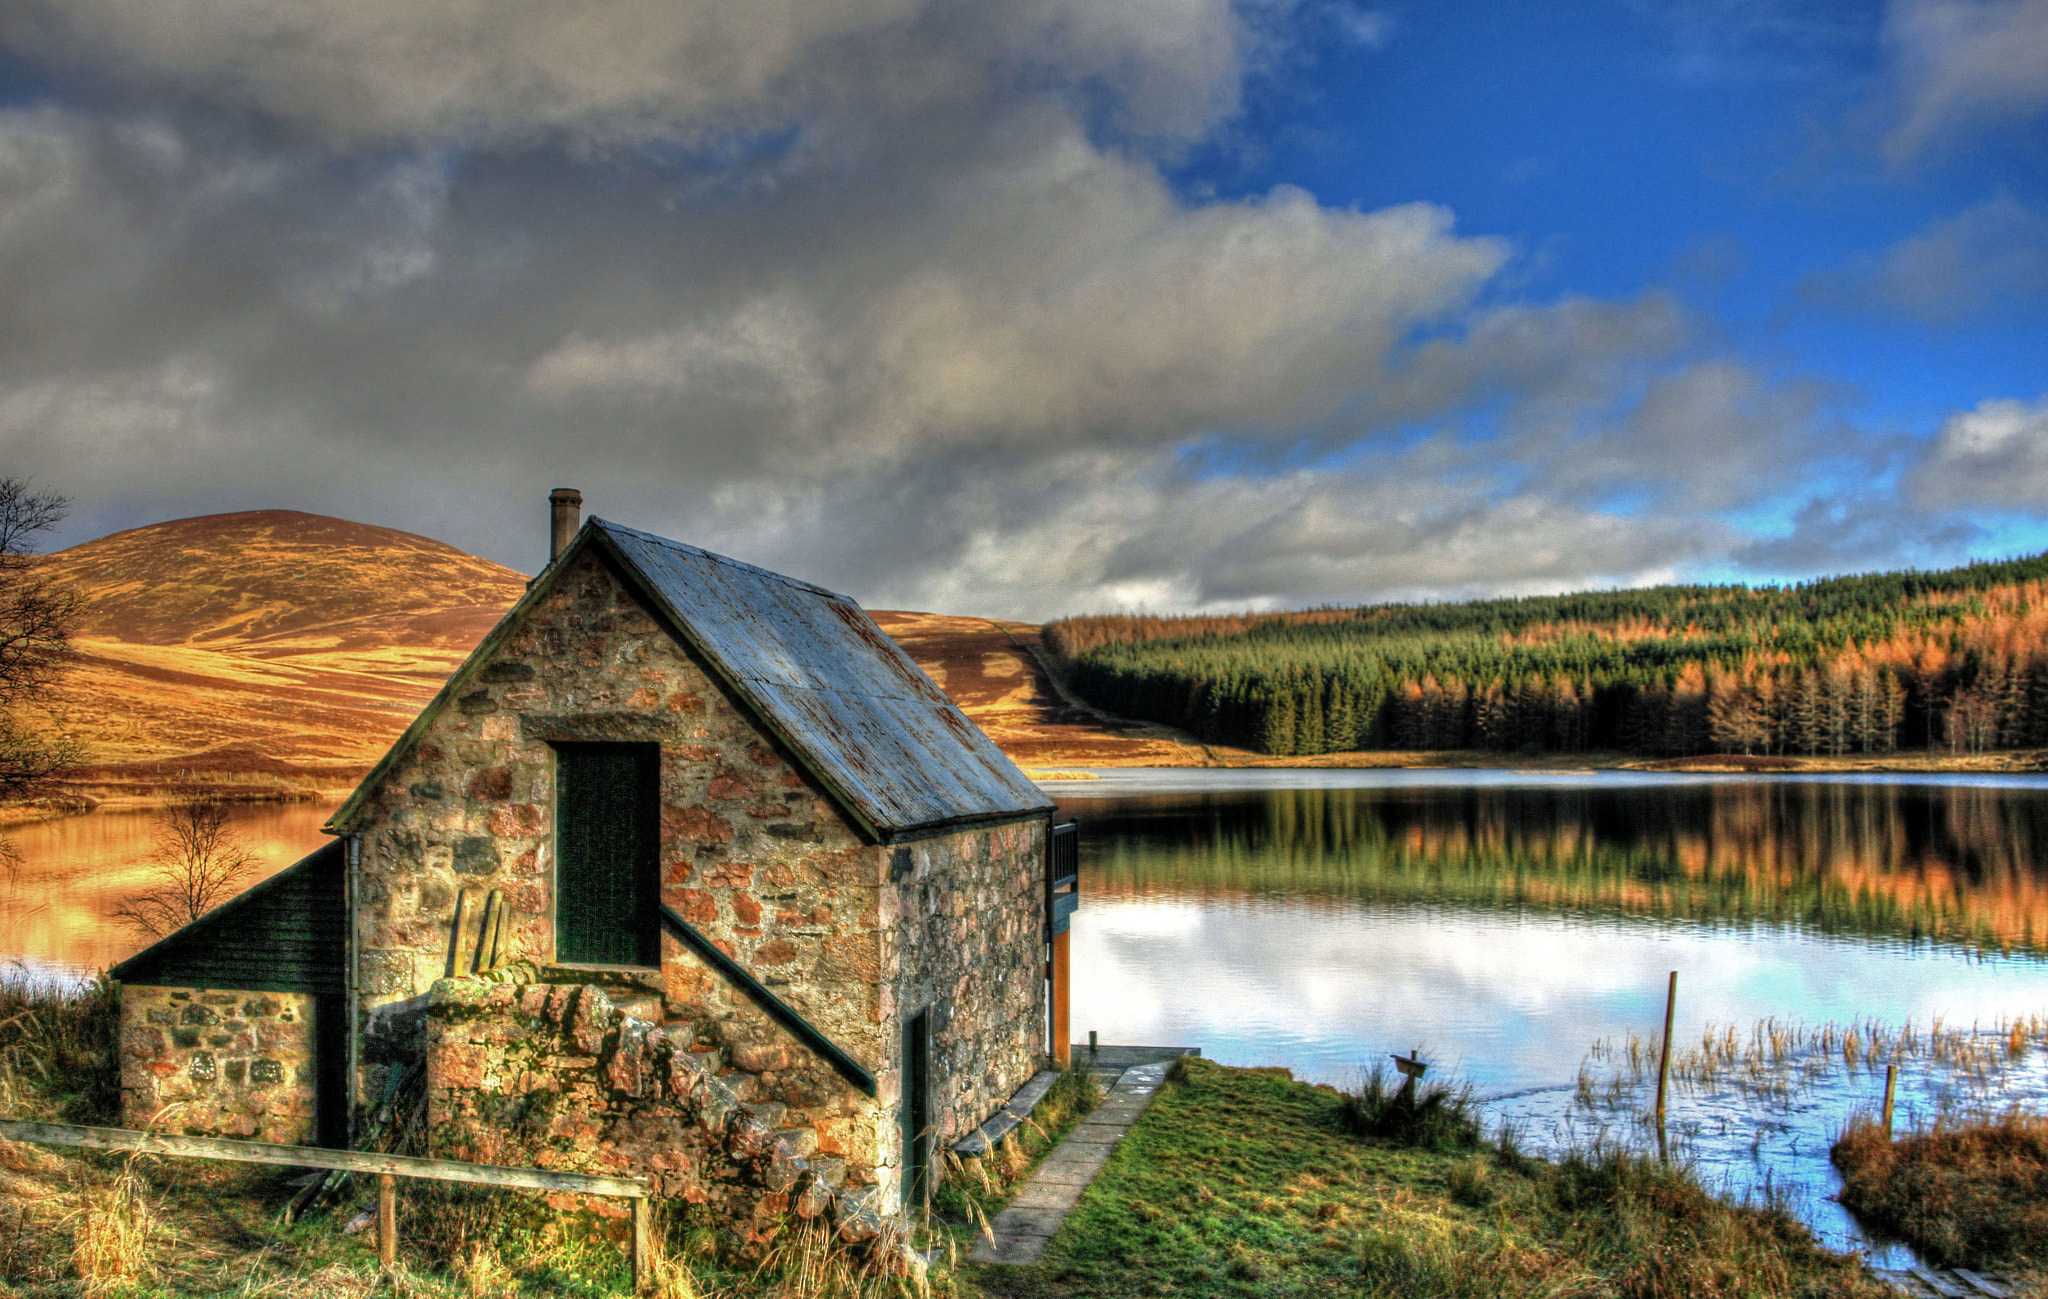 Photograph Boathouse At Loch Auchentaple 2 by Hilda Murray on 500px